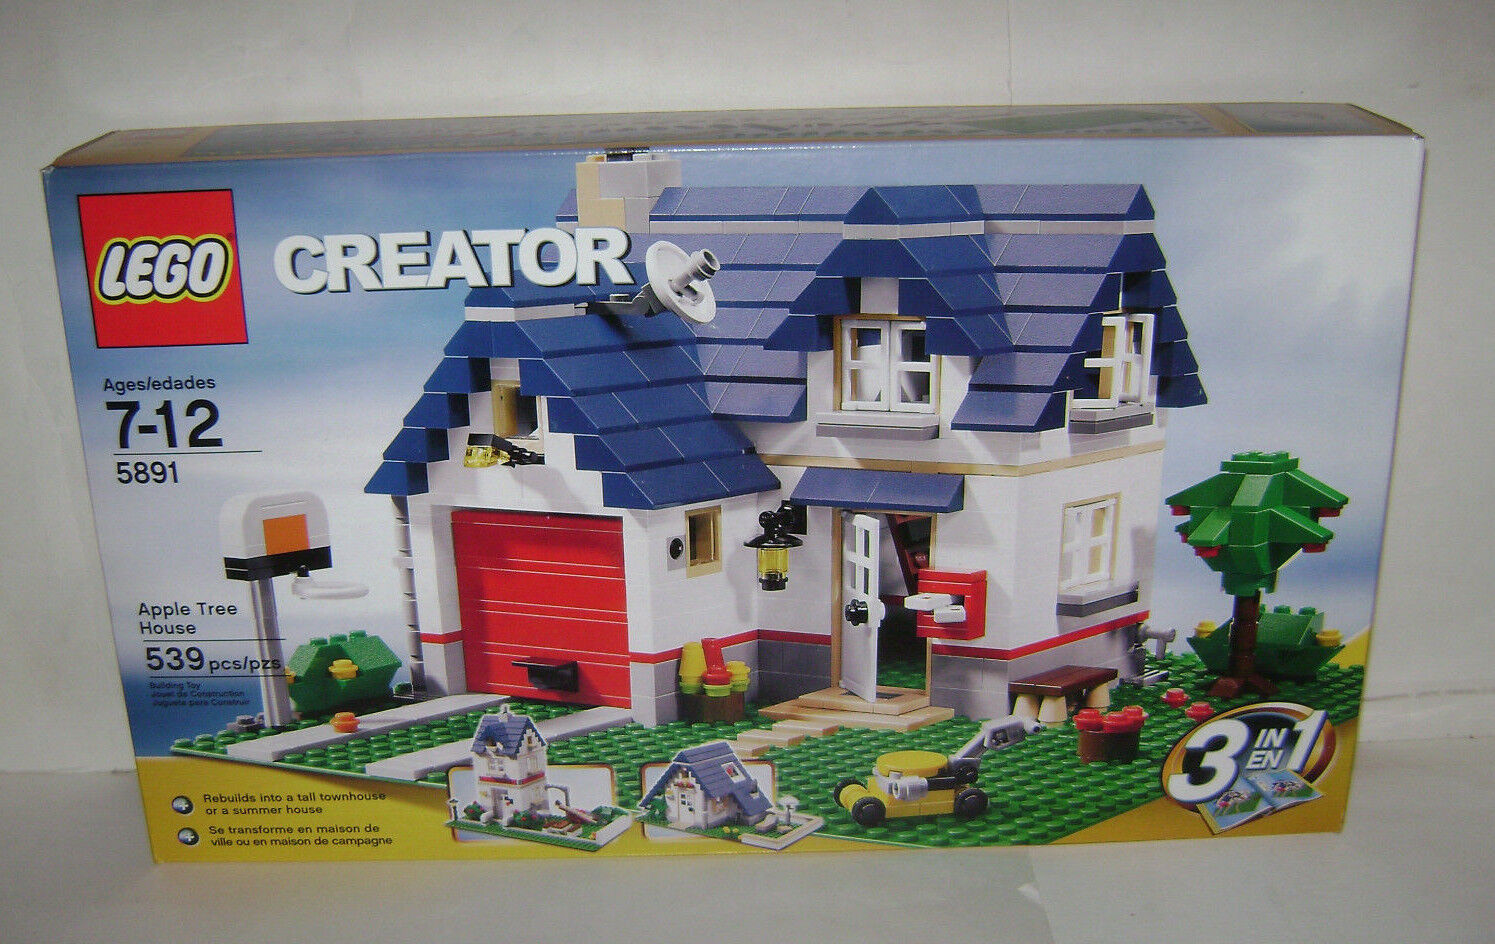 nouveau 5891 Lego CREATOR Apple Tree House 3 in  1 Building Toy SEALED BOX RETIrouge A  abordable